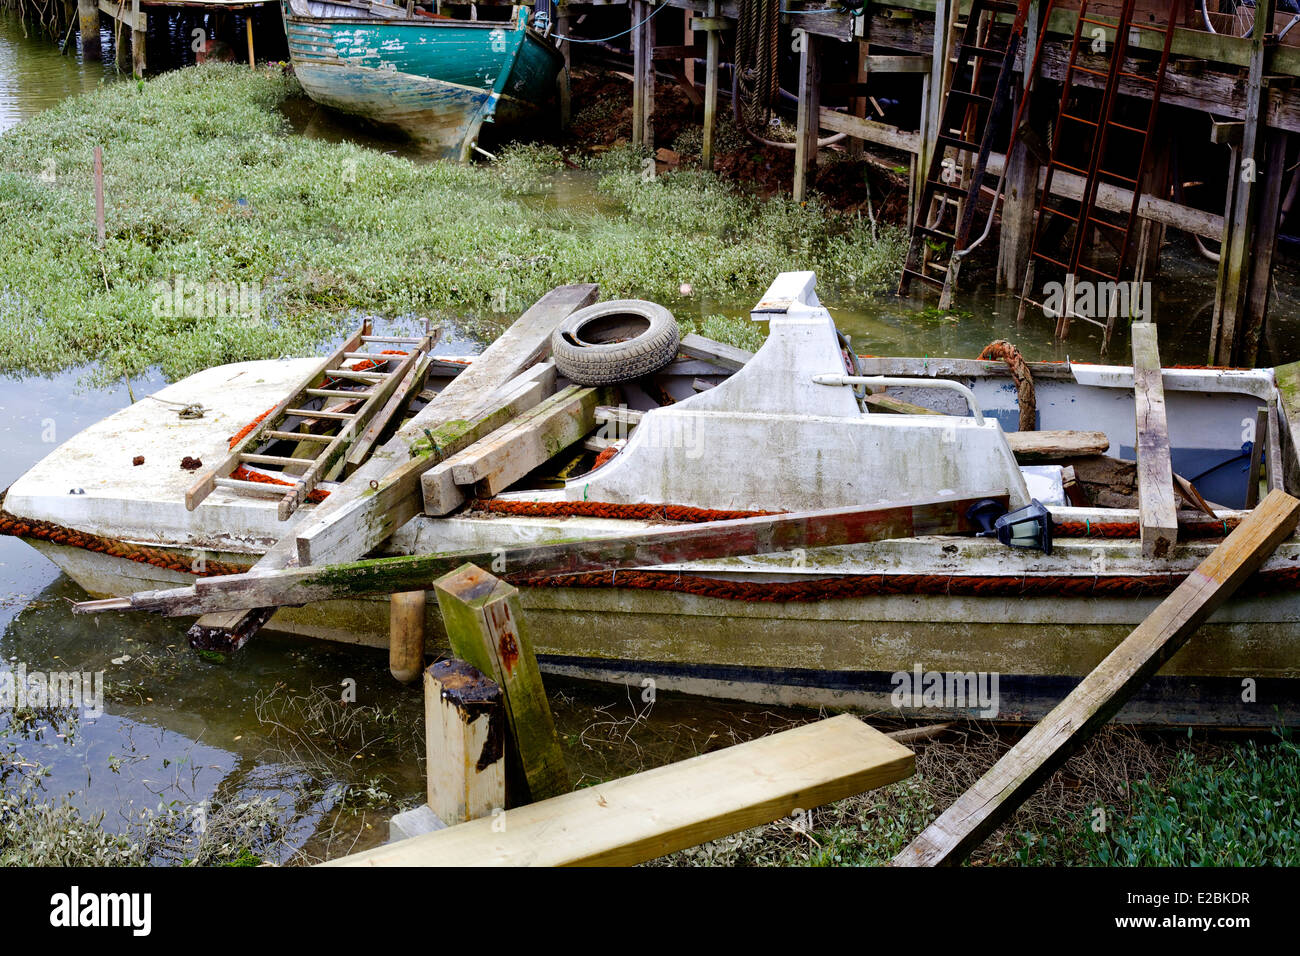 Sinking Boat with junk aboard. - Stock Image